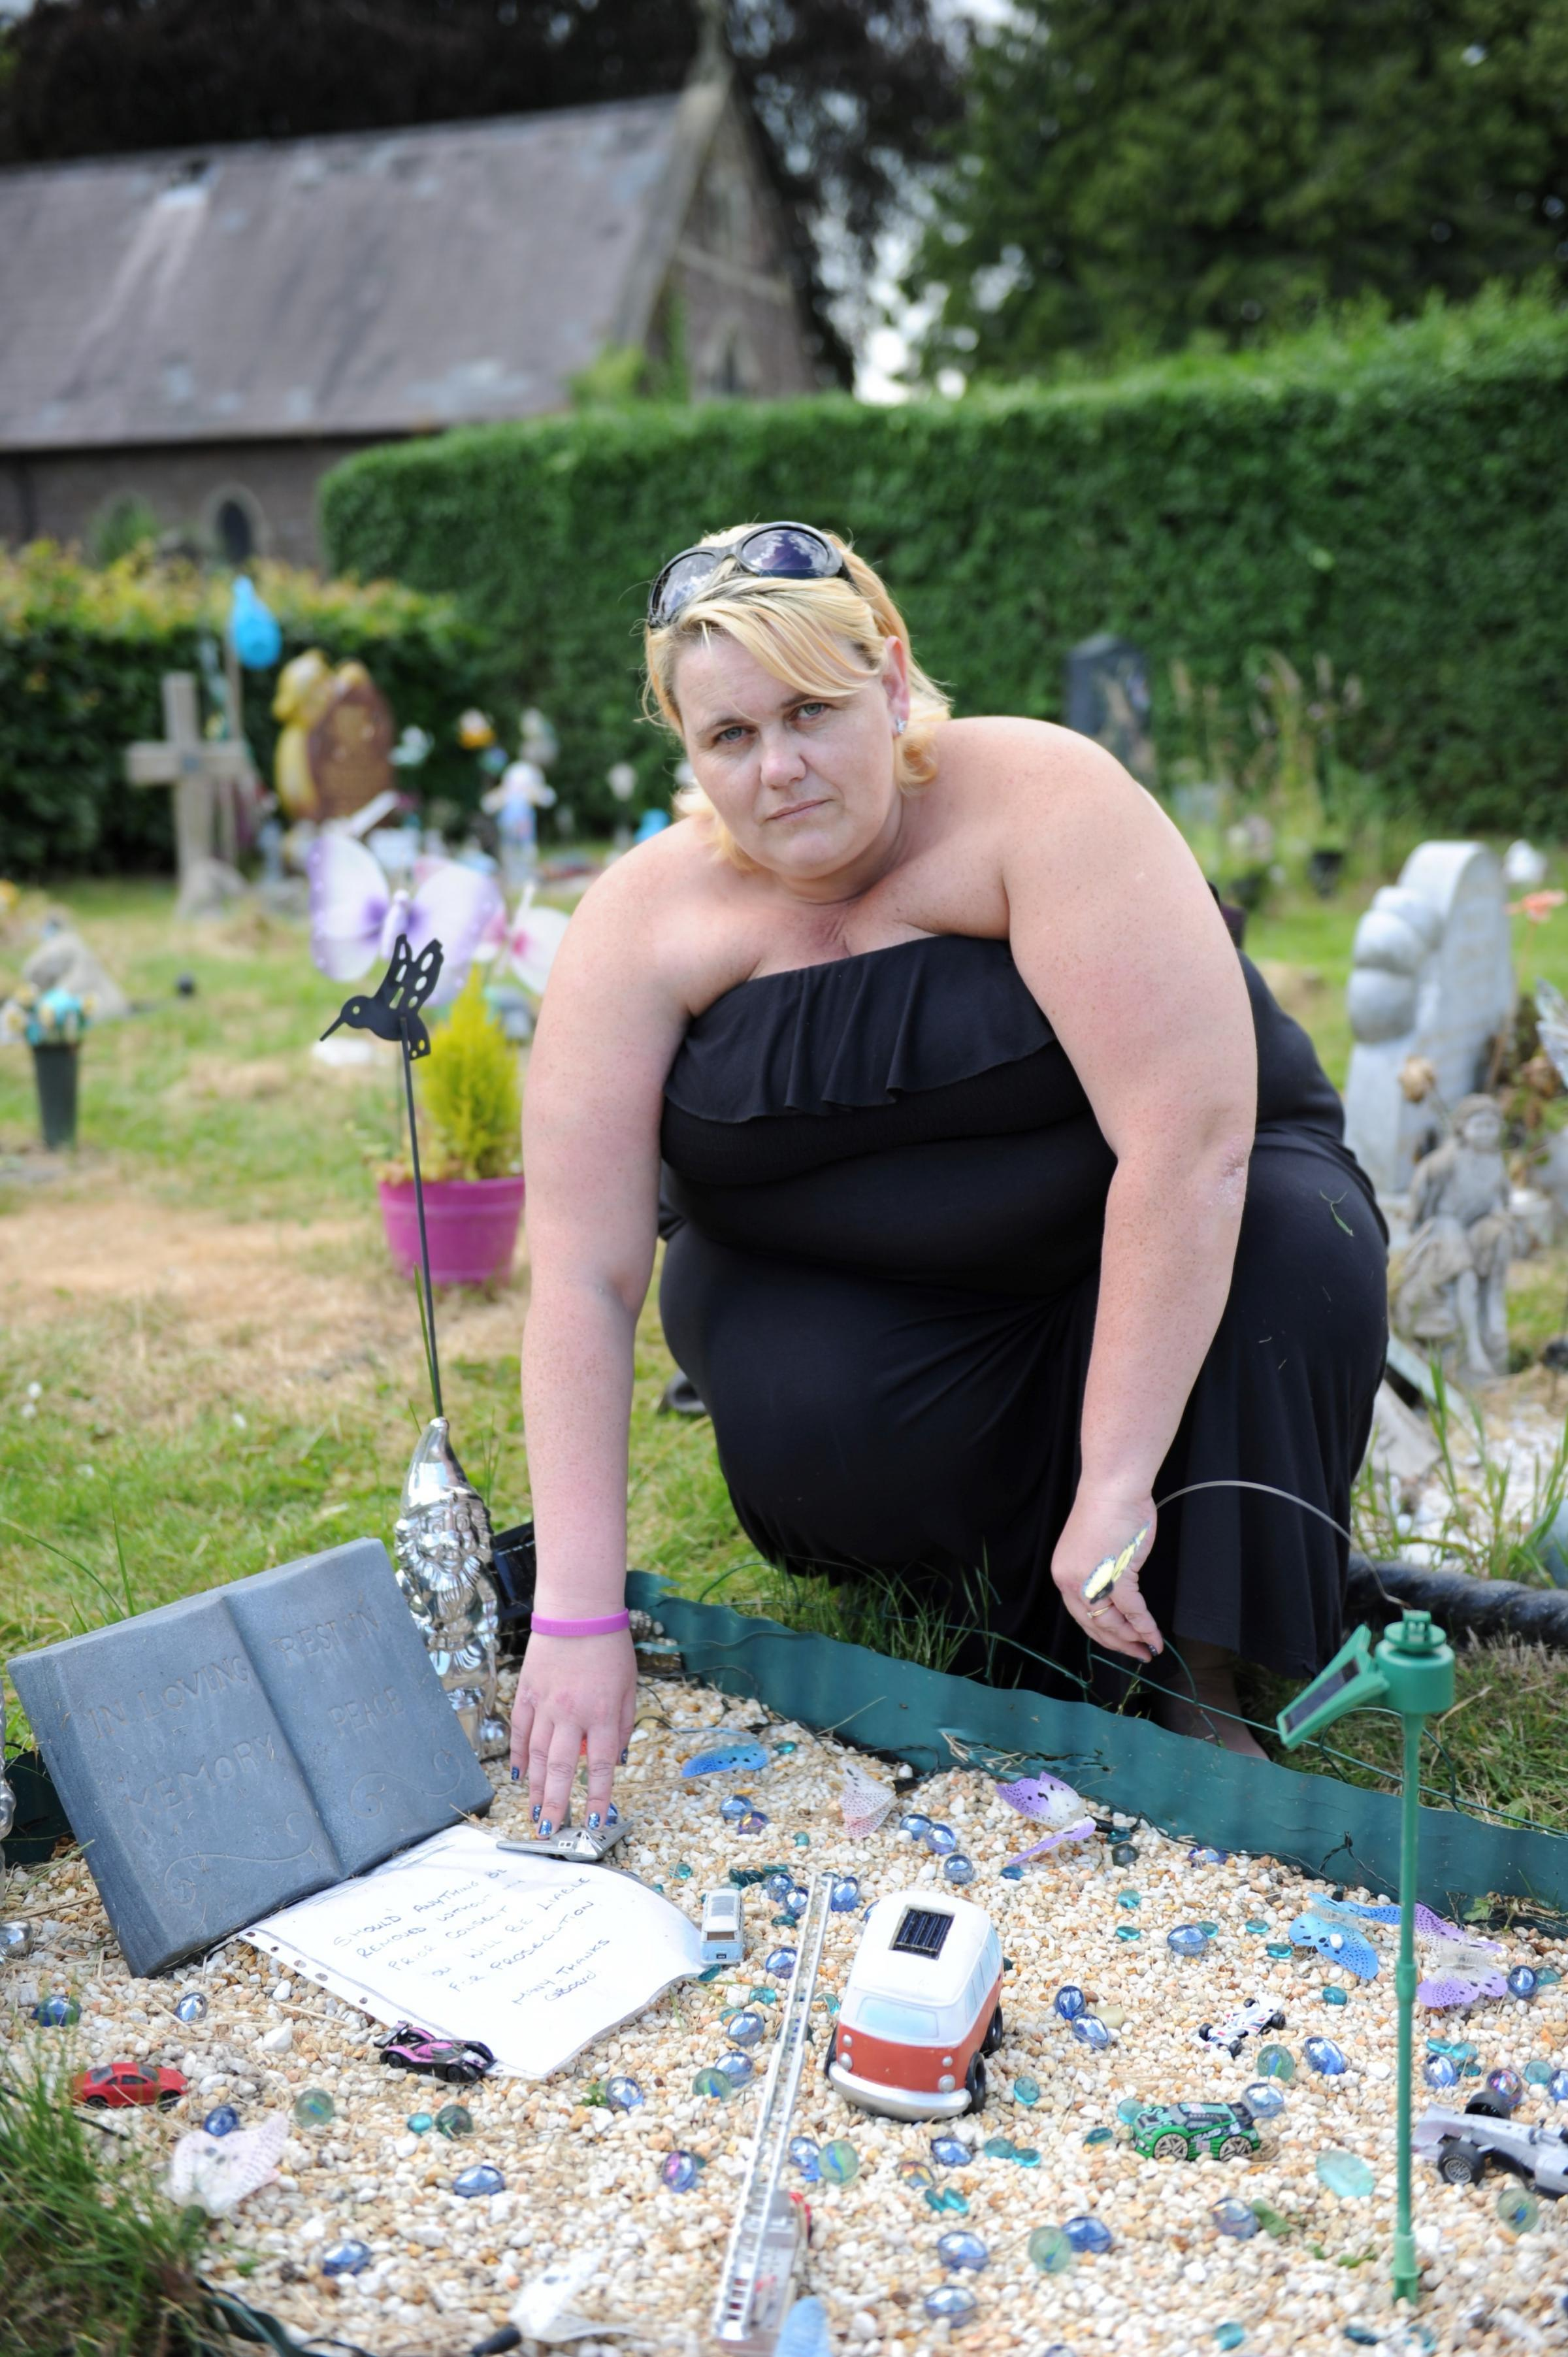 Solar Grave Decorations 5000 Sign Petition Started By Mum Of Stillborn Son Calling On